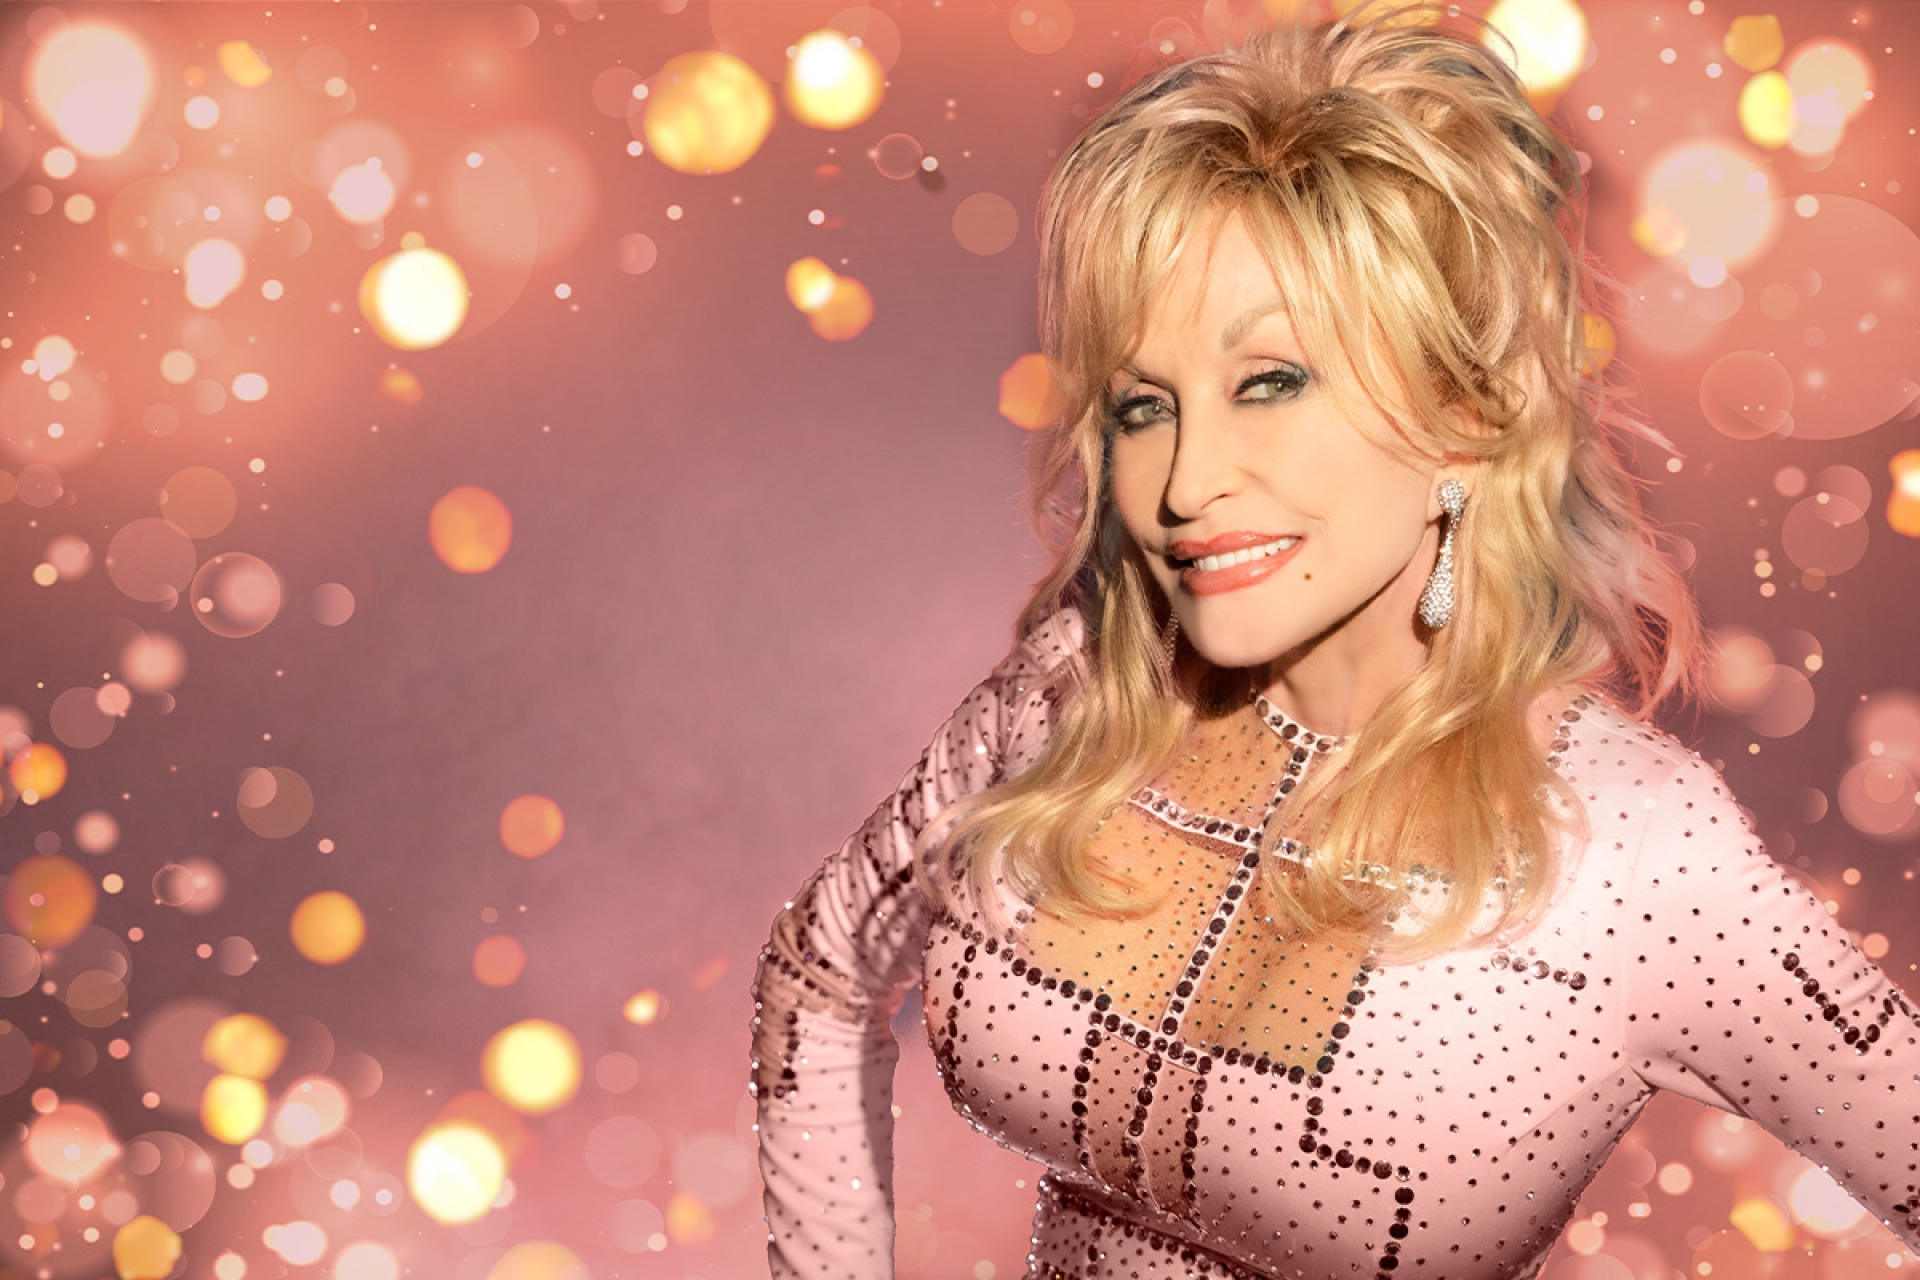 Dolly Parton and James Patterson workin' 9 to 5 to collaborate on new book Run, Rose, Run